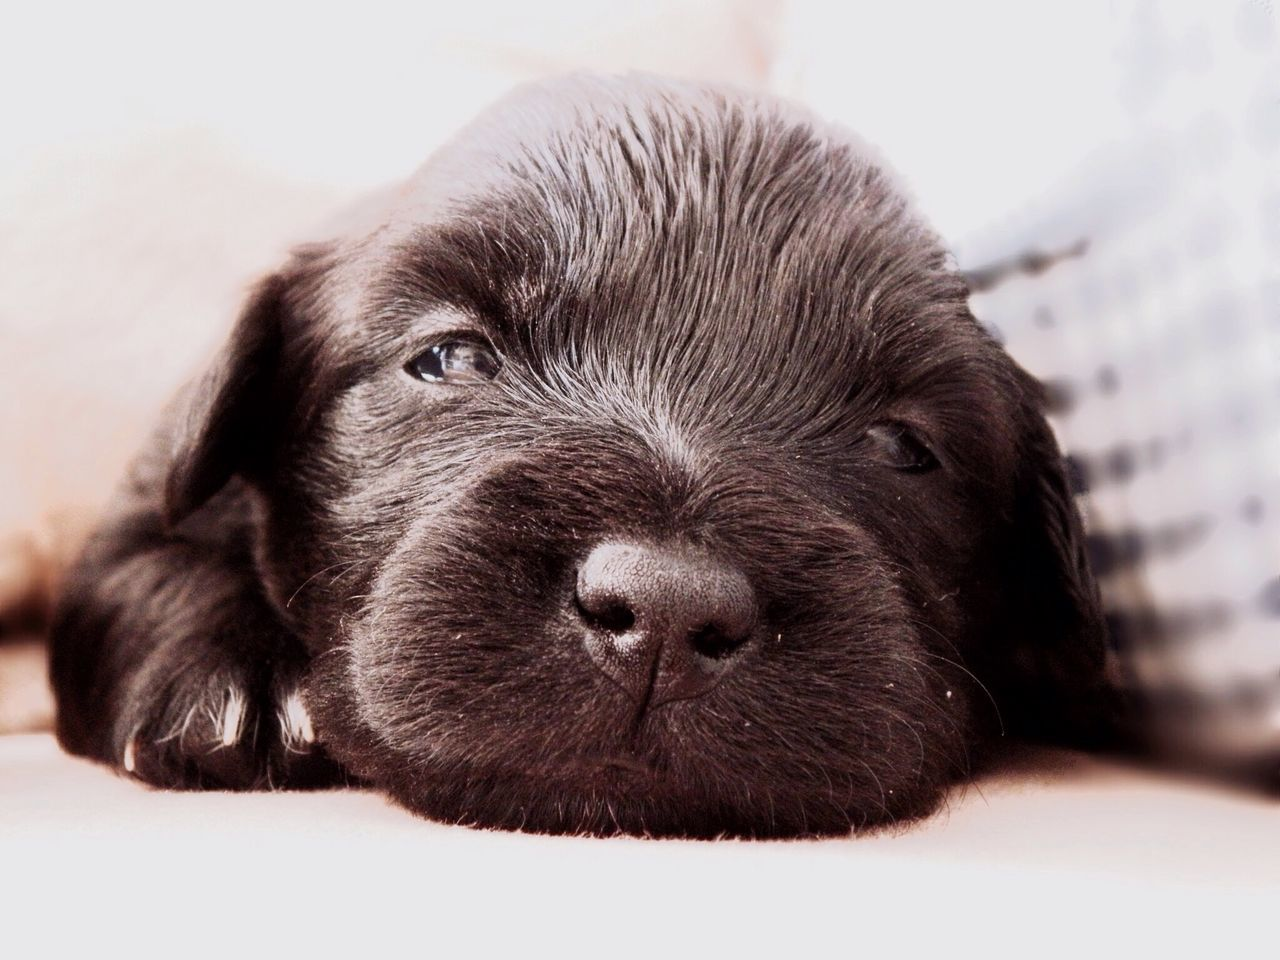 Pets Dog Domestic Animals One Animal Mammal Animal Themes Close-up No People Portrait Indoors  Black Labrador Day Puppy Black Black Dog Softness Baby Cute Cute Pets Looking At Camera Baby Animals Babydog Puppy Love Puppy Face Black Puppy